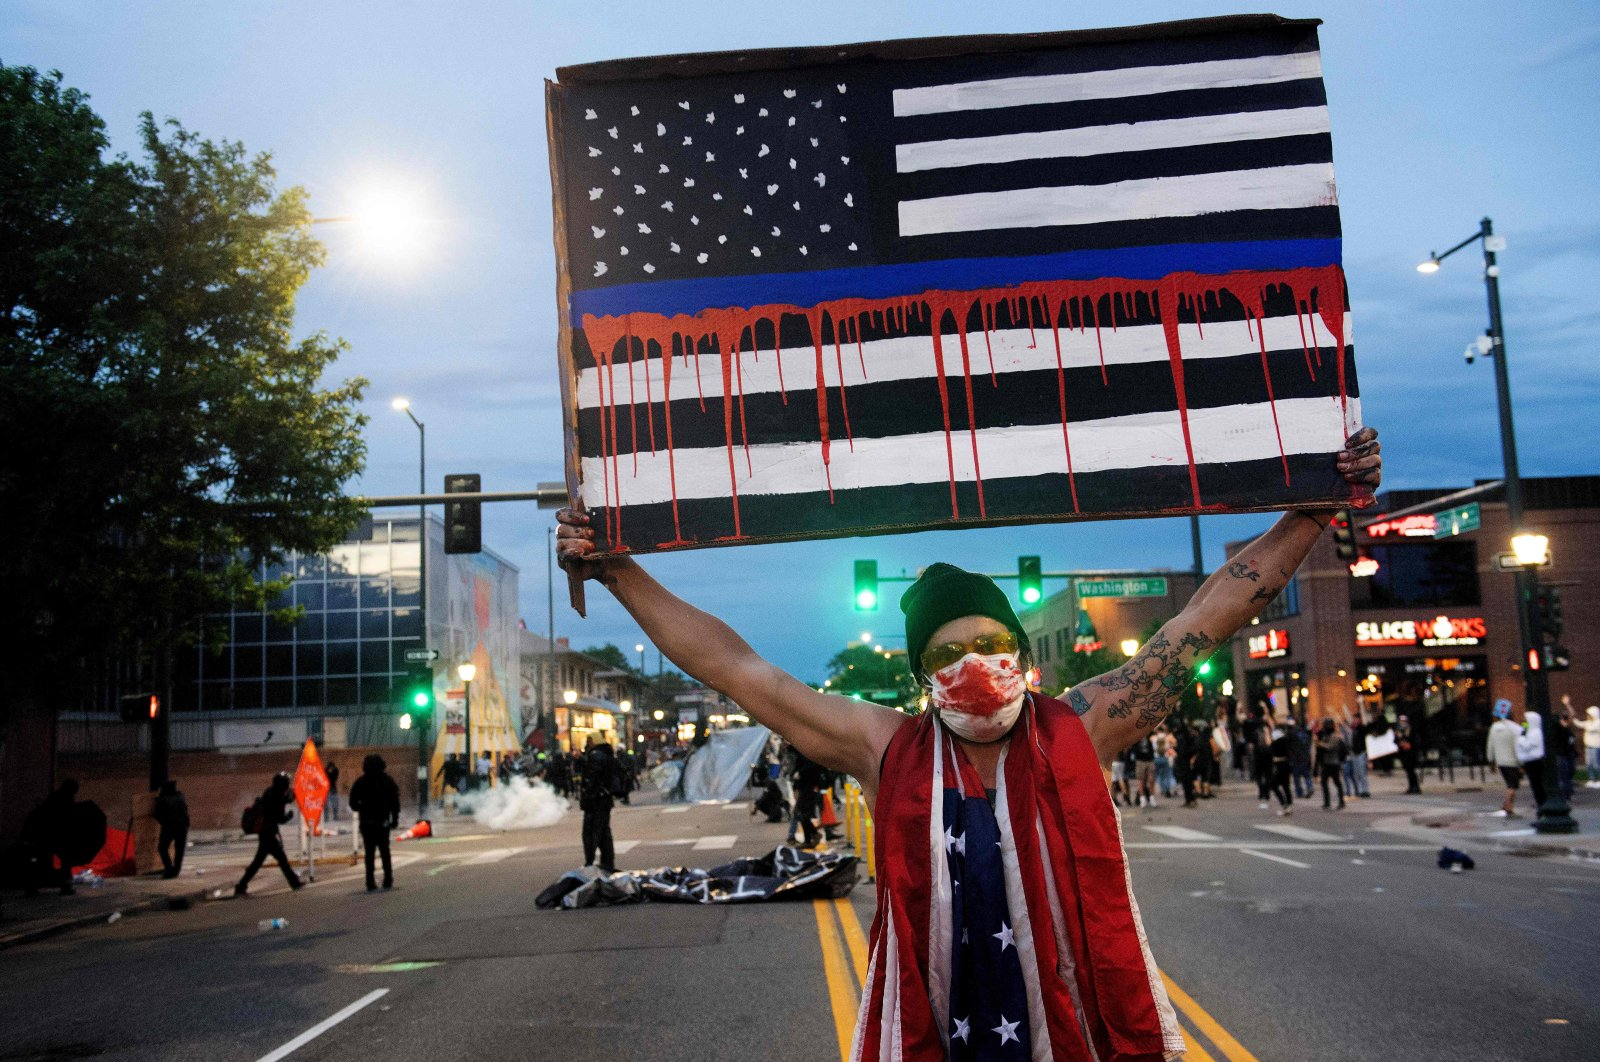 A demonstrator holds up a sign during a protest, Denver, May 31, 2020. (AFP Photo)